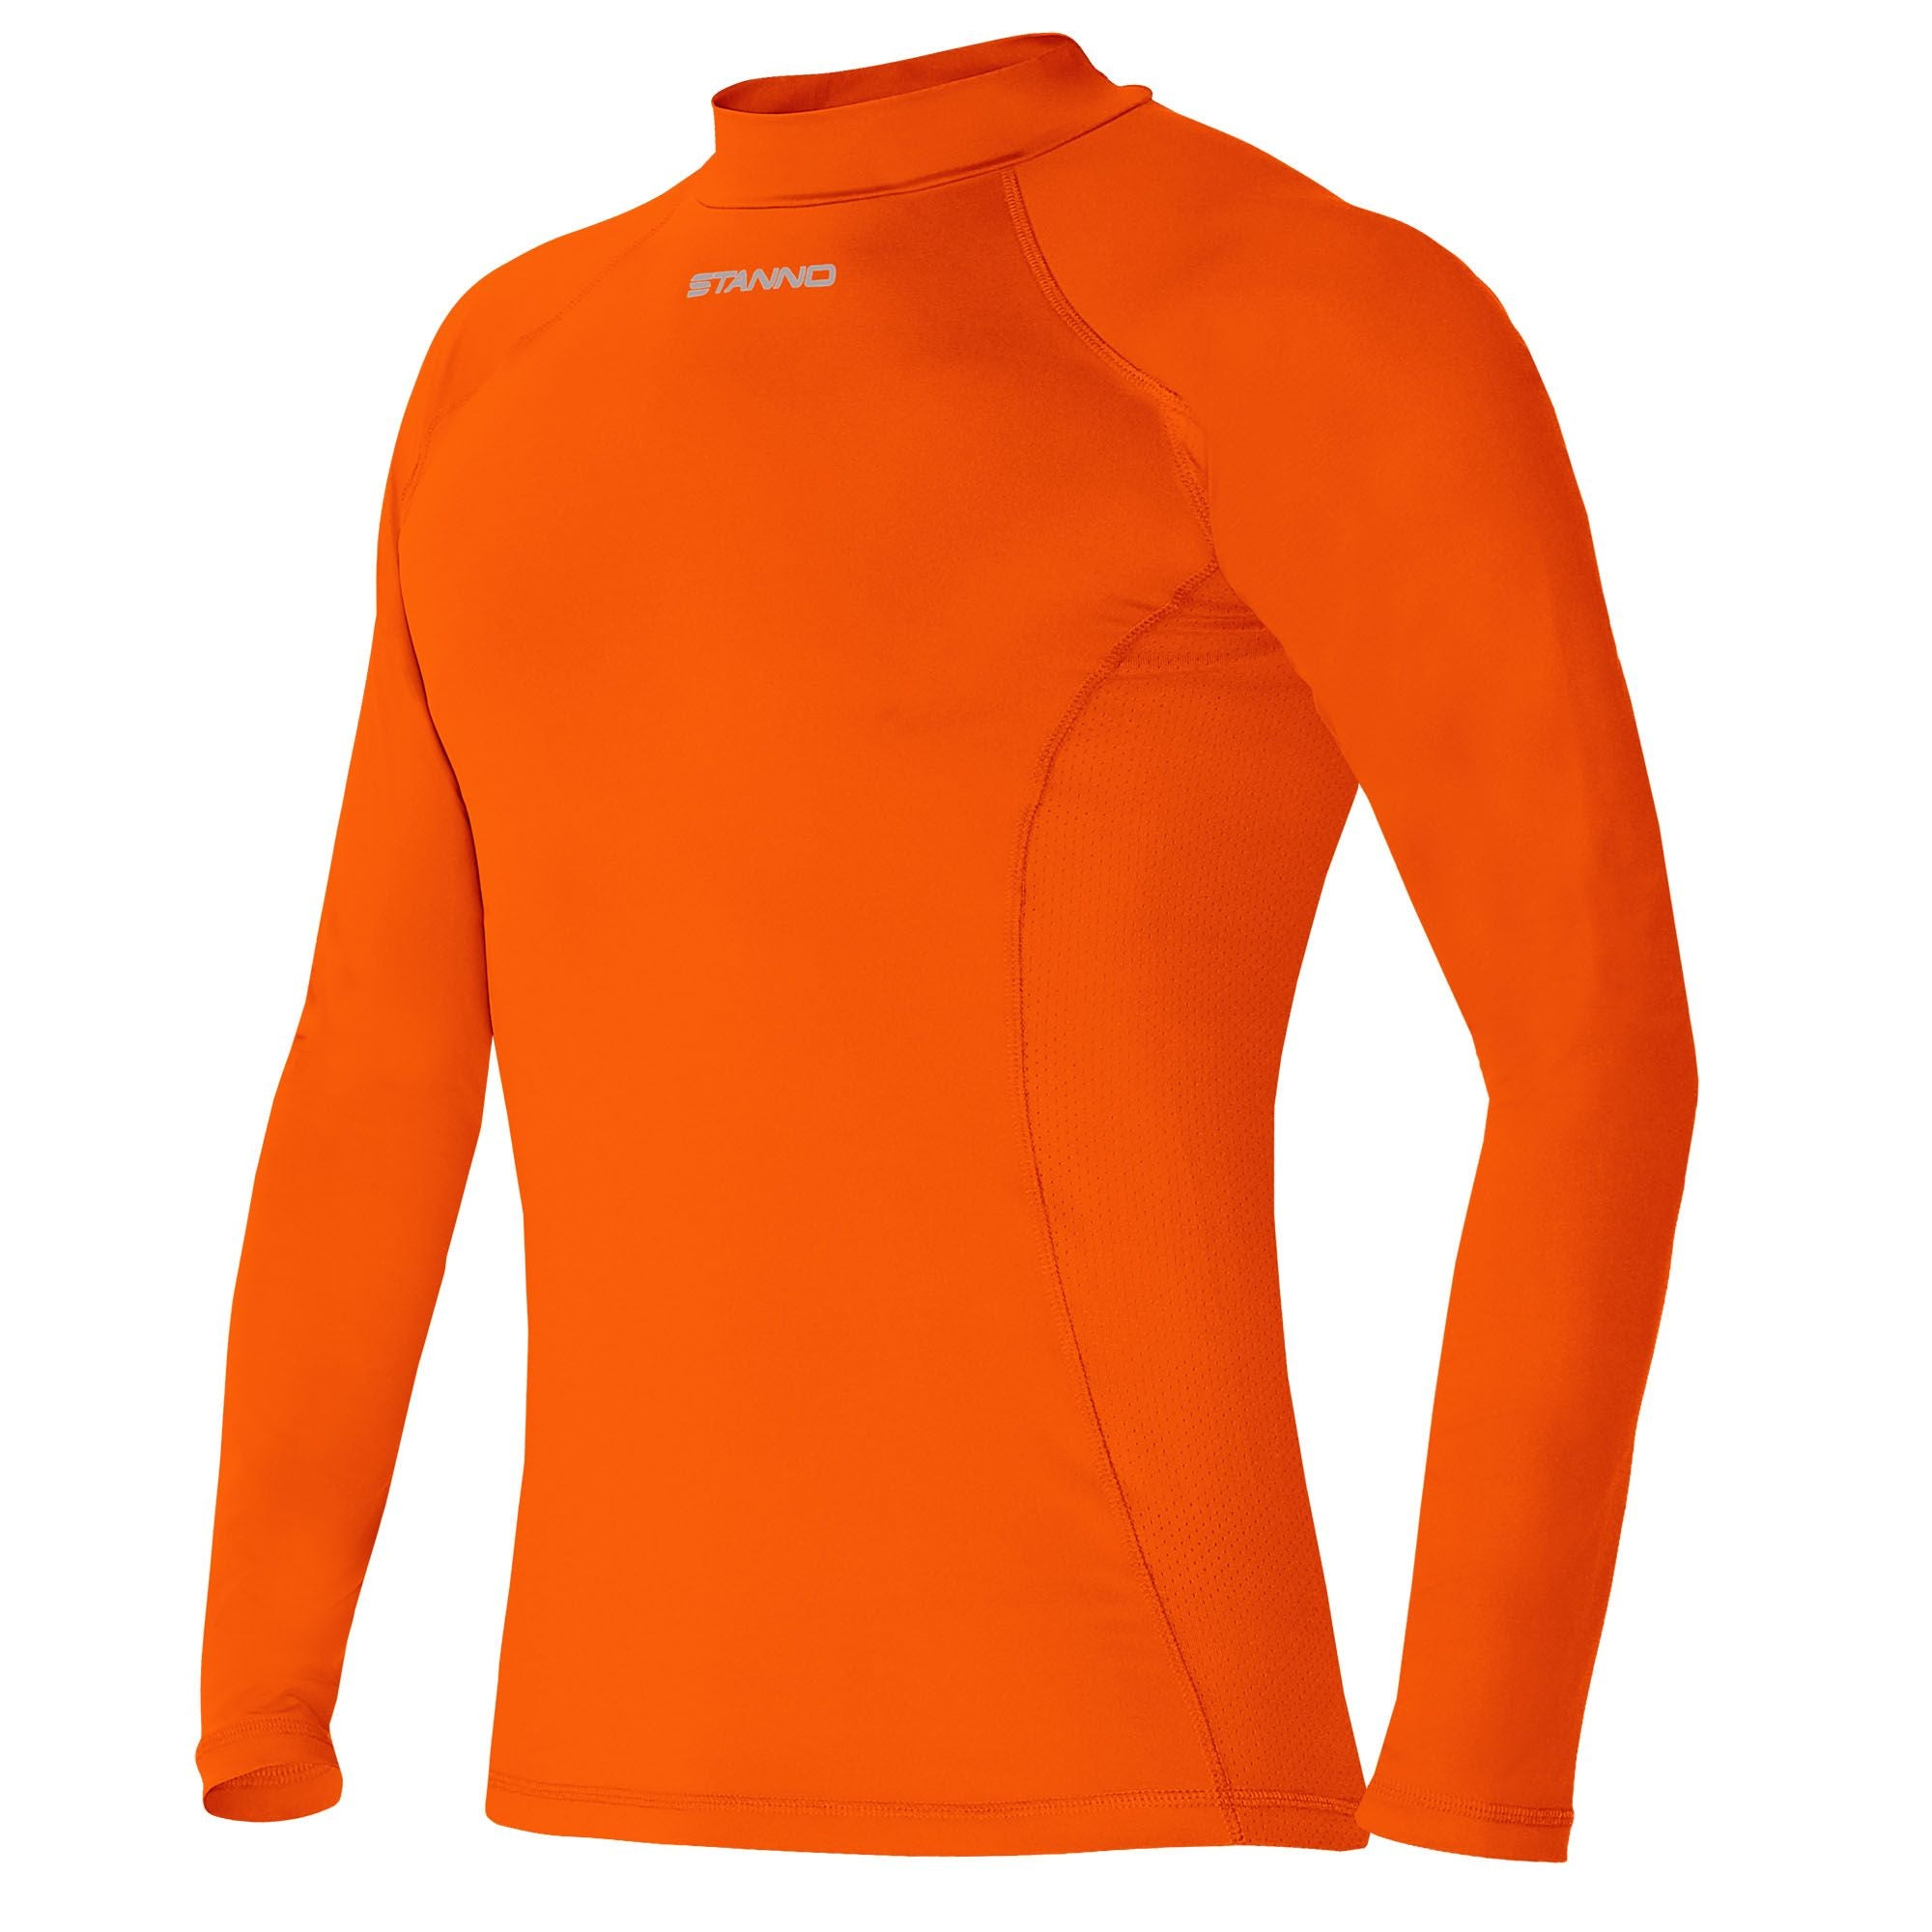 Stanno Pro Base Layer - Orange